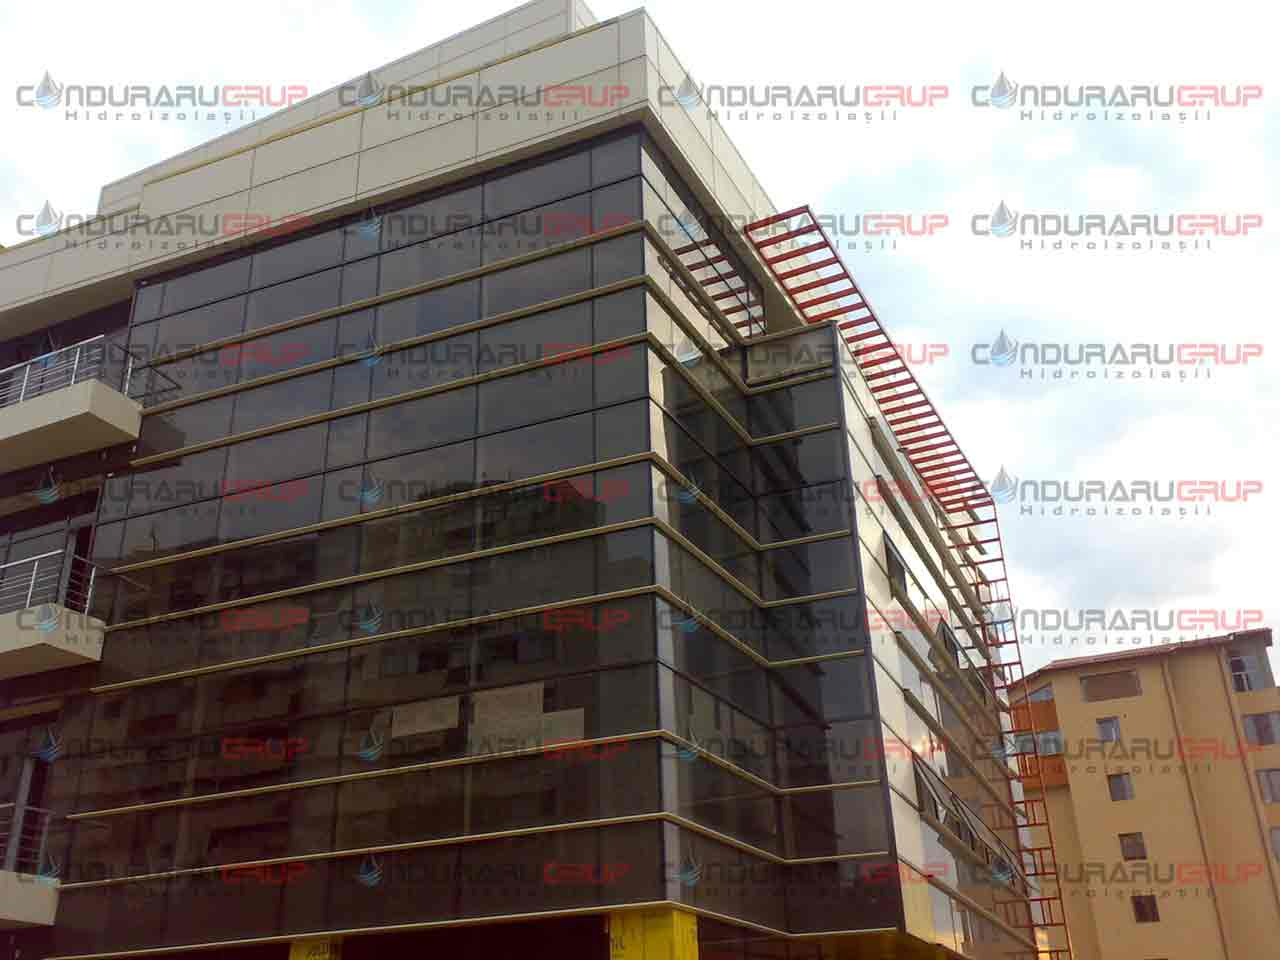 Office Building CONDURARU GRUP - Poza 1